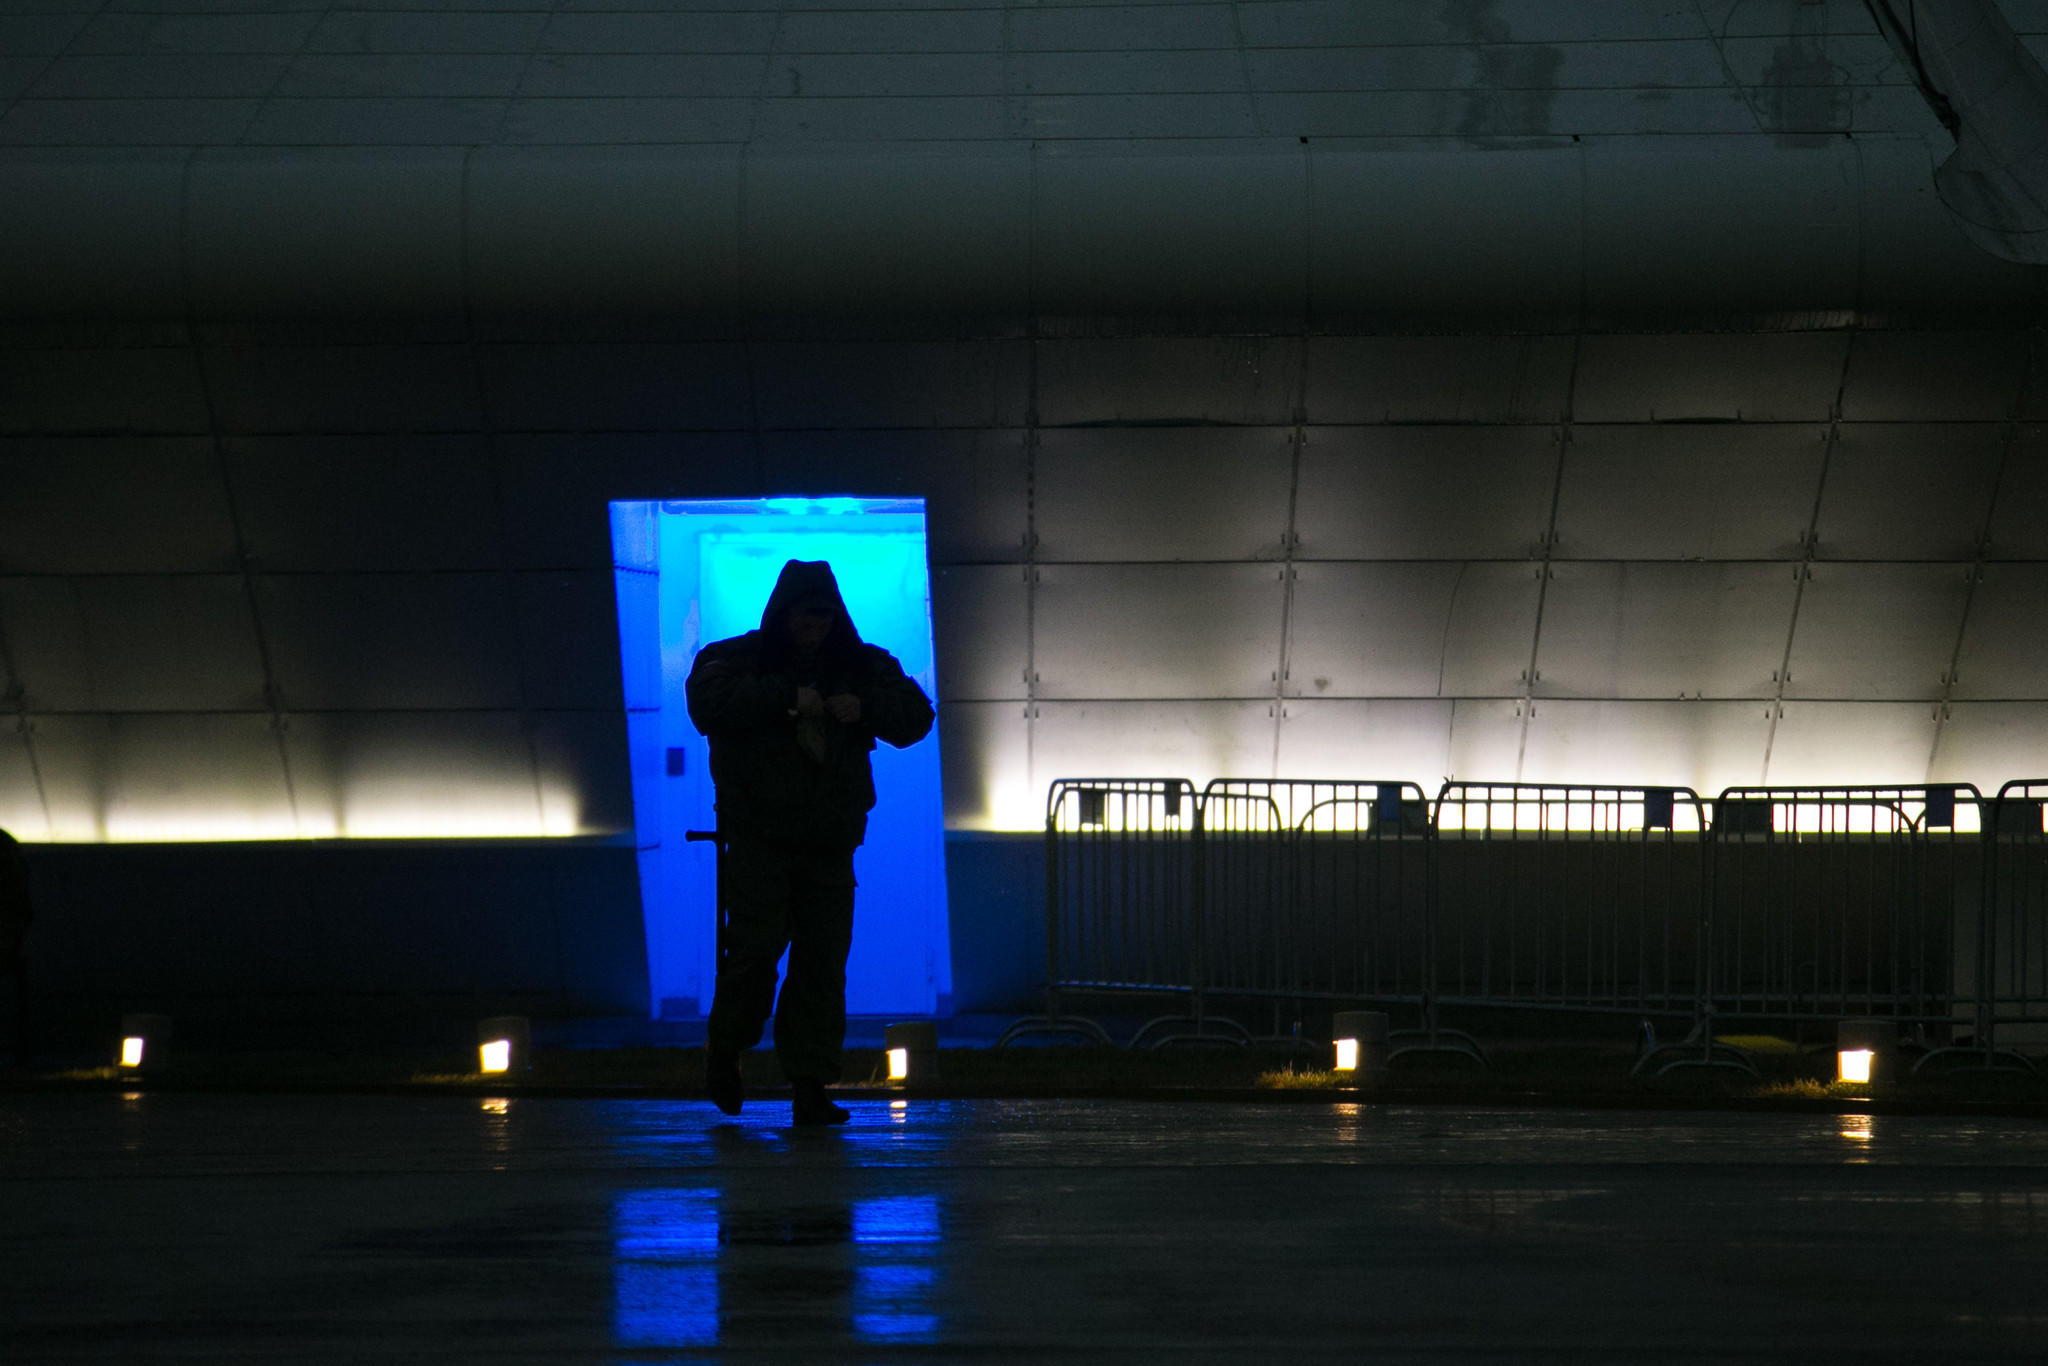 A security guard is silhouetted at the base of the Olympic Cauldron in Olympic Park prior to the 2014 Sochi Winter Olympic Games.